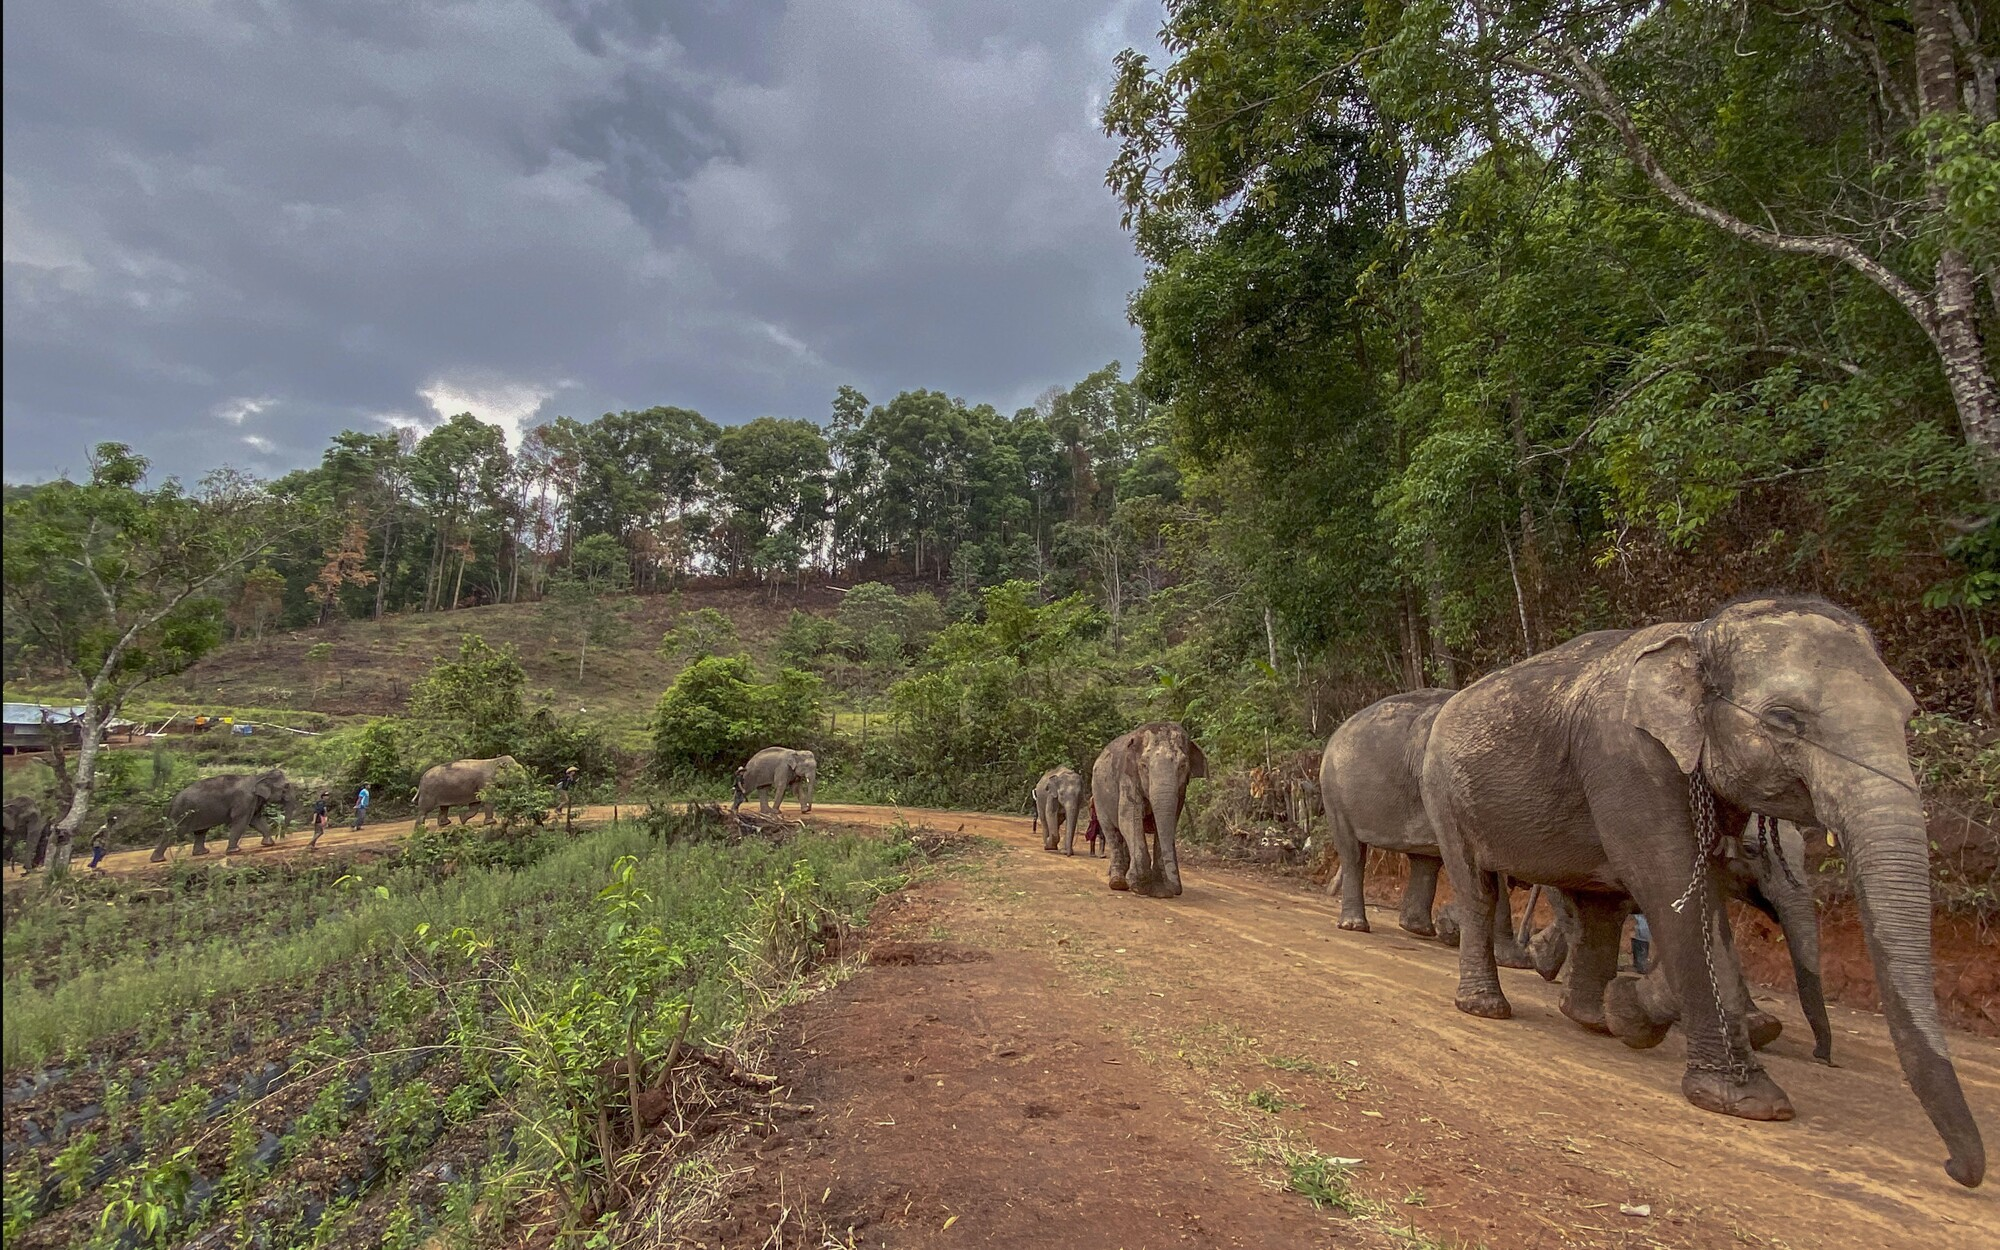 A herd of elephants walks along a dirt road last week during a nearly 100-mile journey from Mae Wang to Ban Huay in northern Thailand.